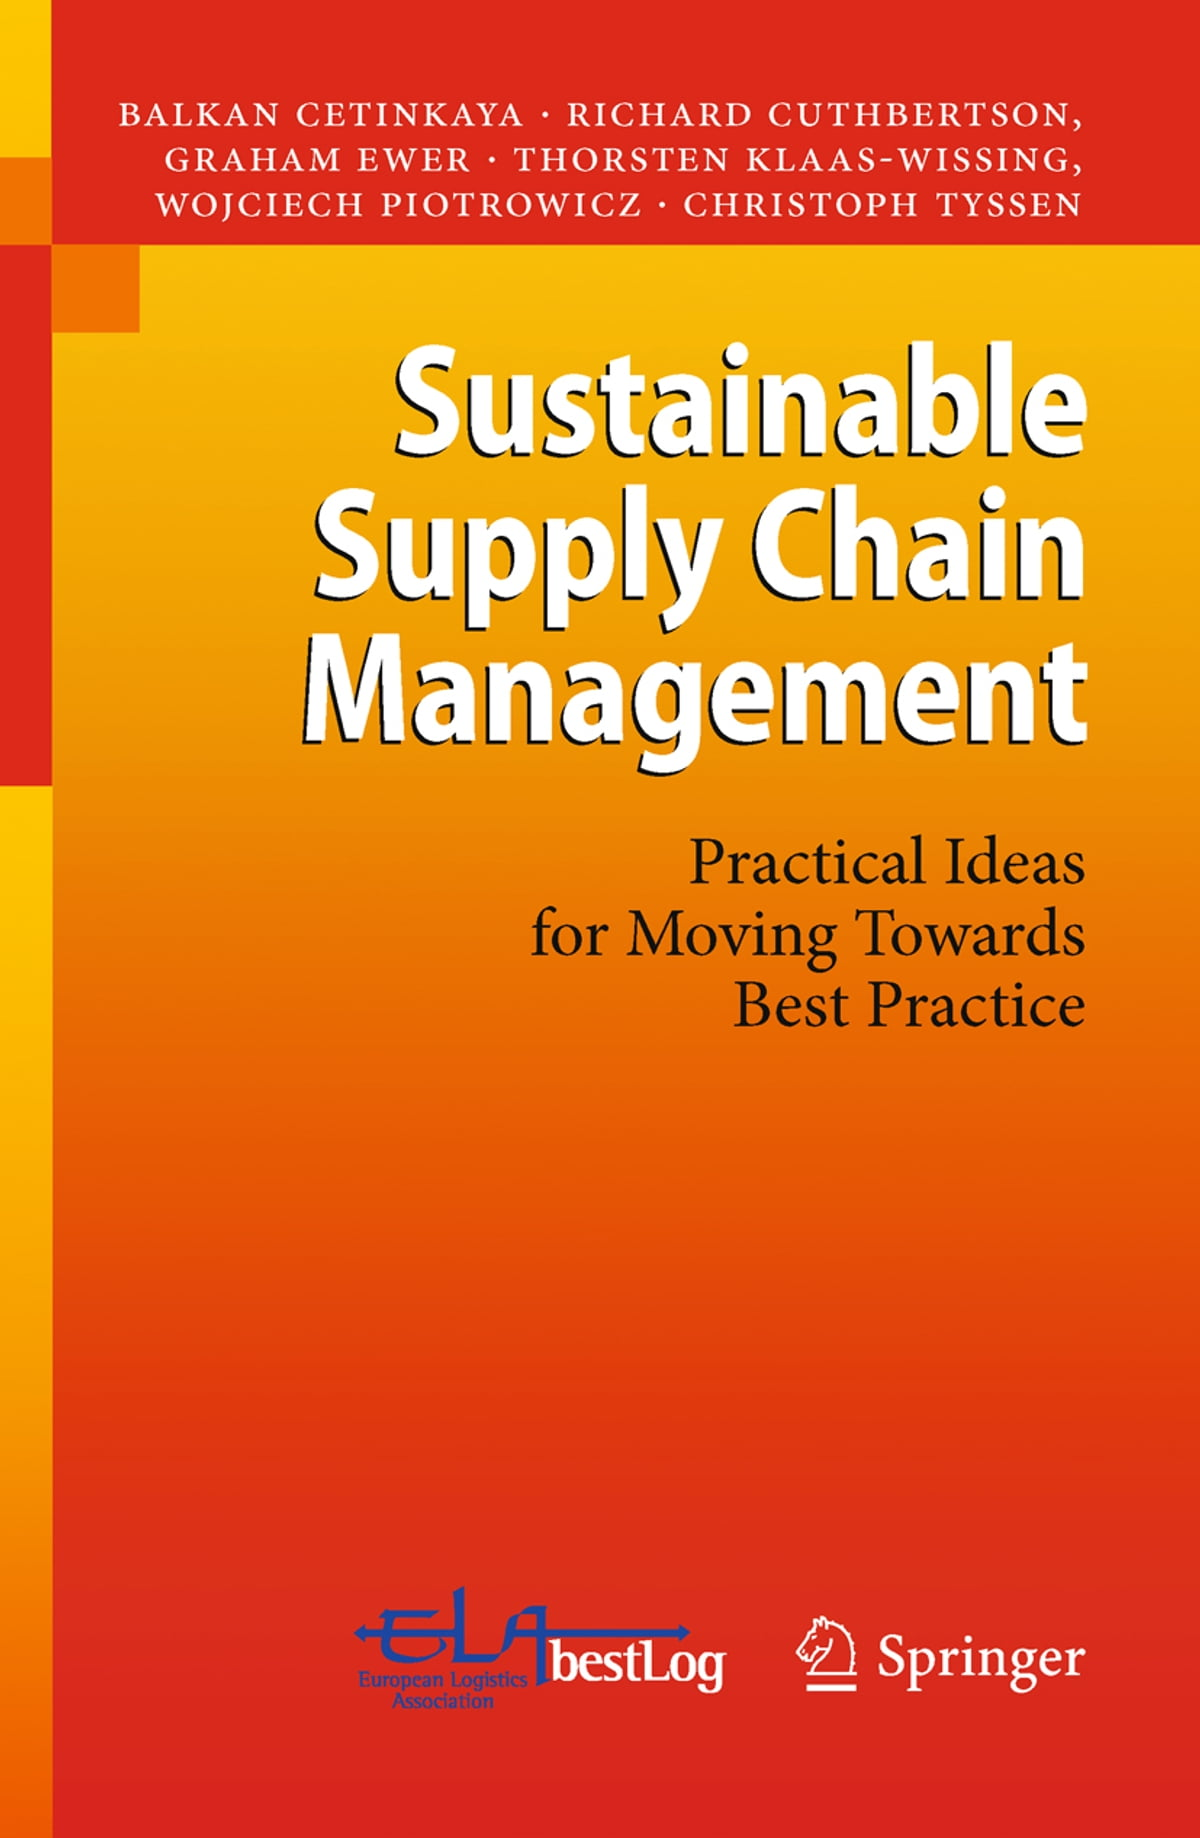 the example of sustainable supply chain